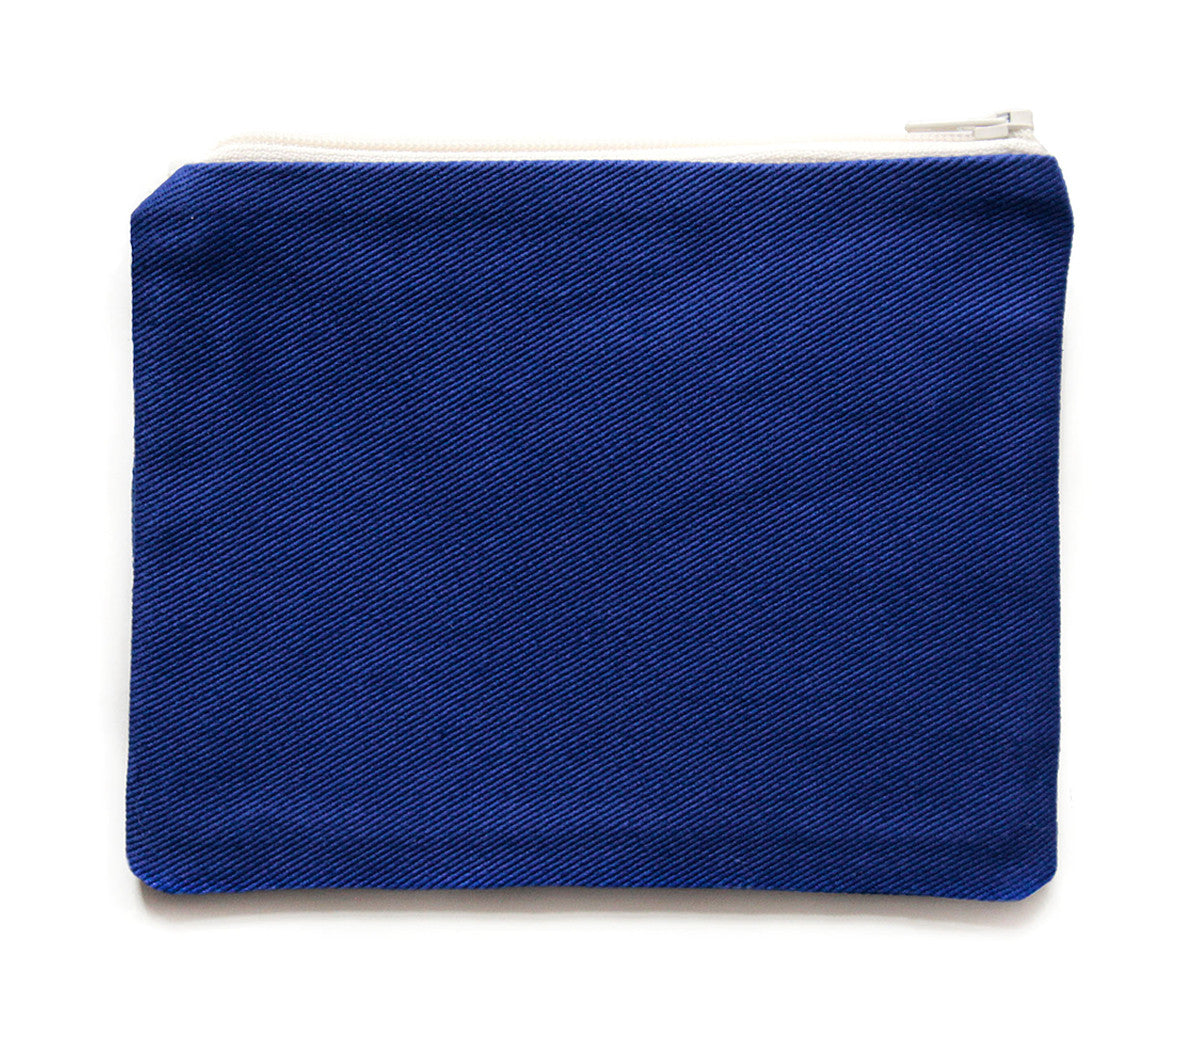 Aerial Zip Pouch was £26